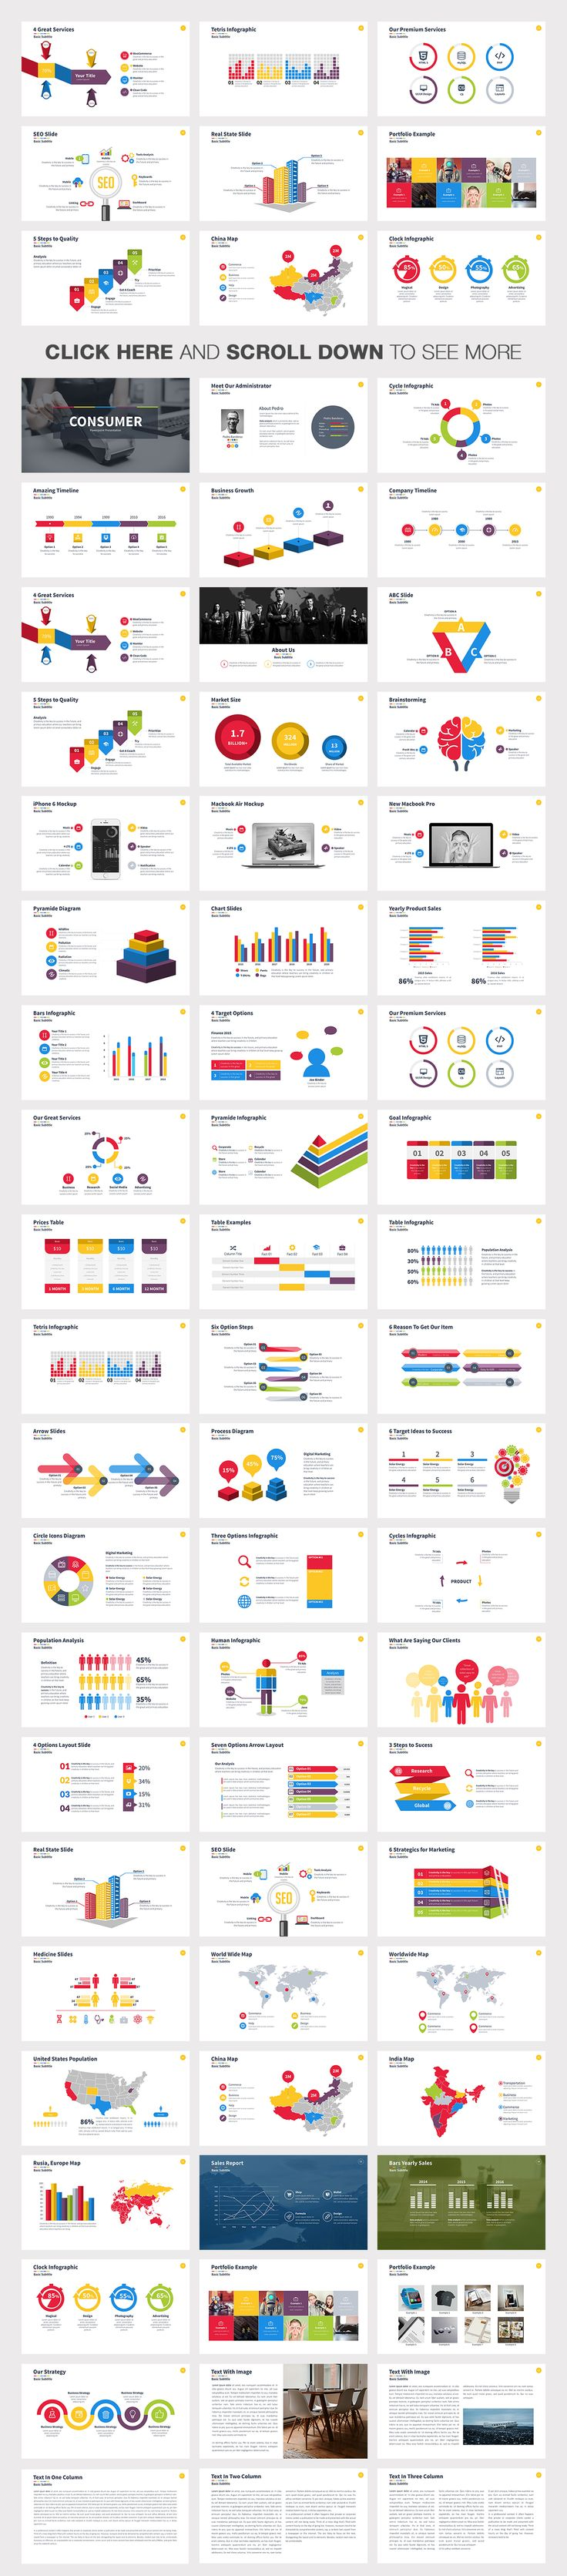 13 best powerpoint templates images on pinterest presentation